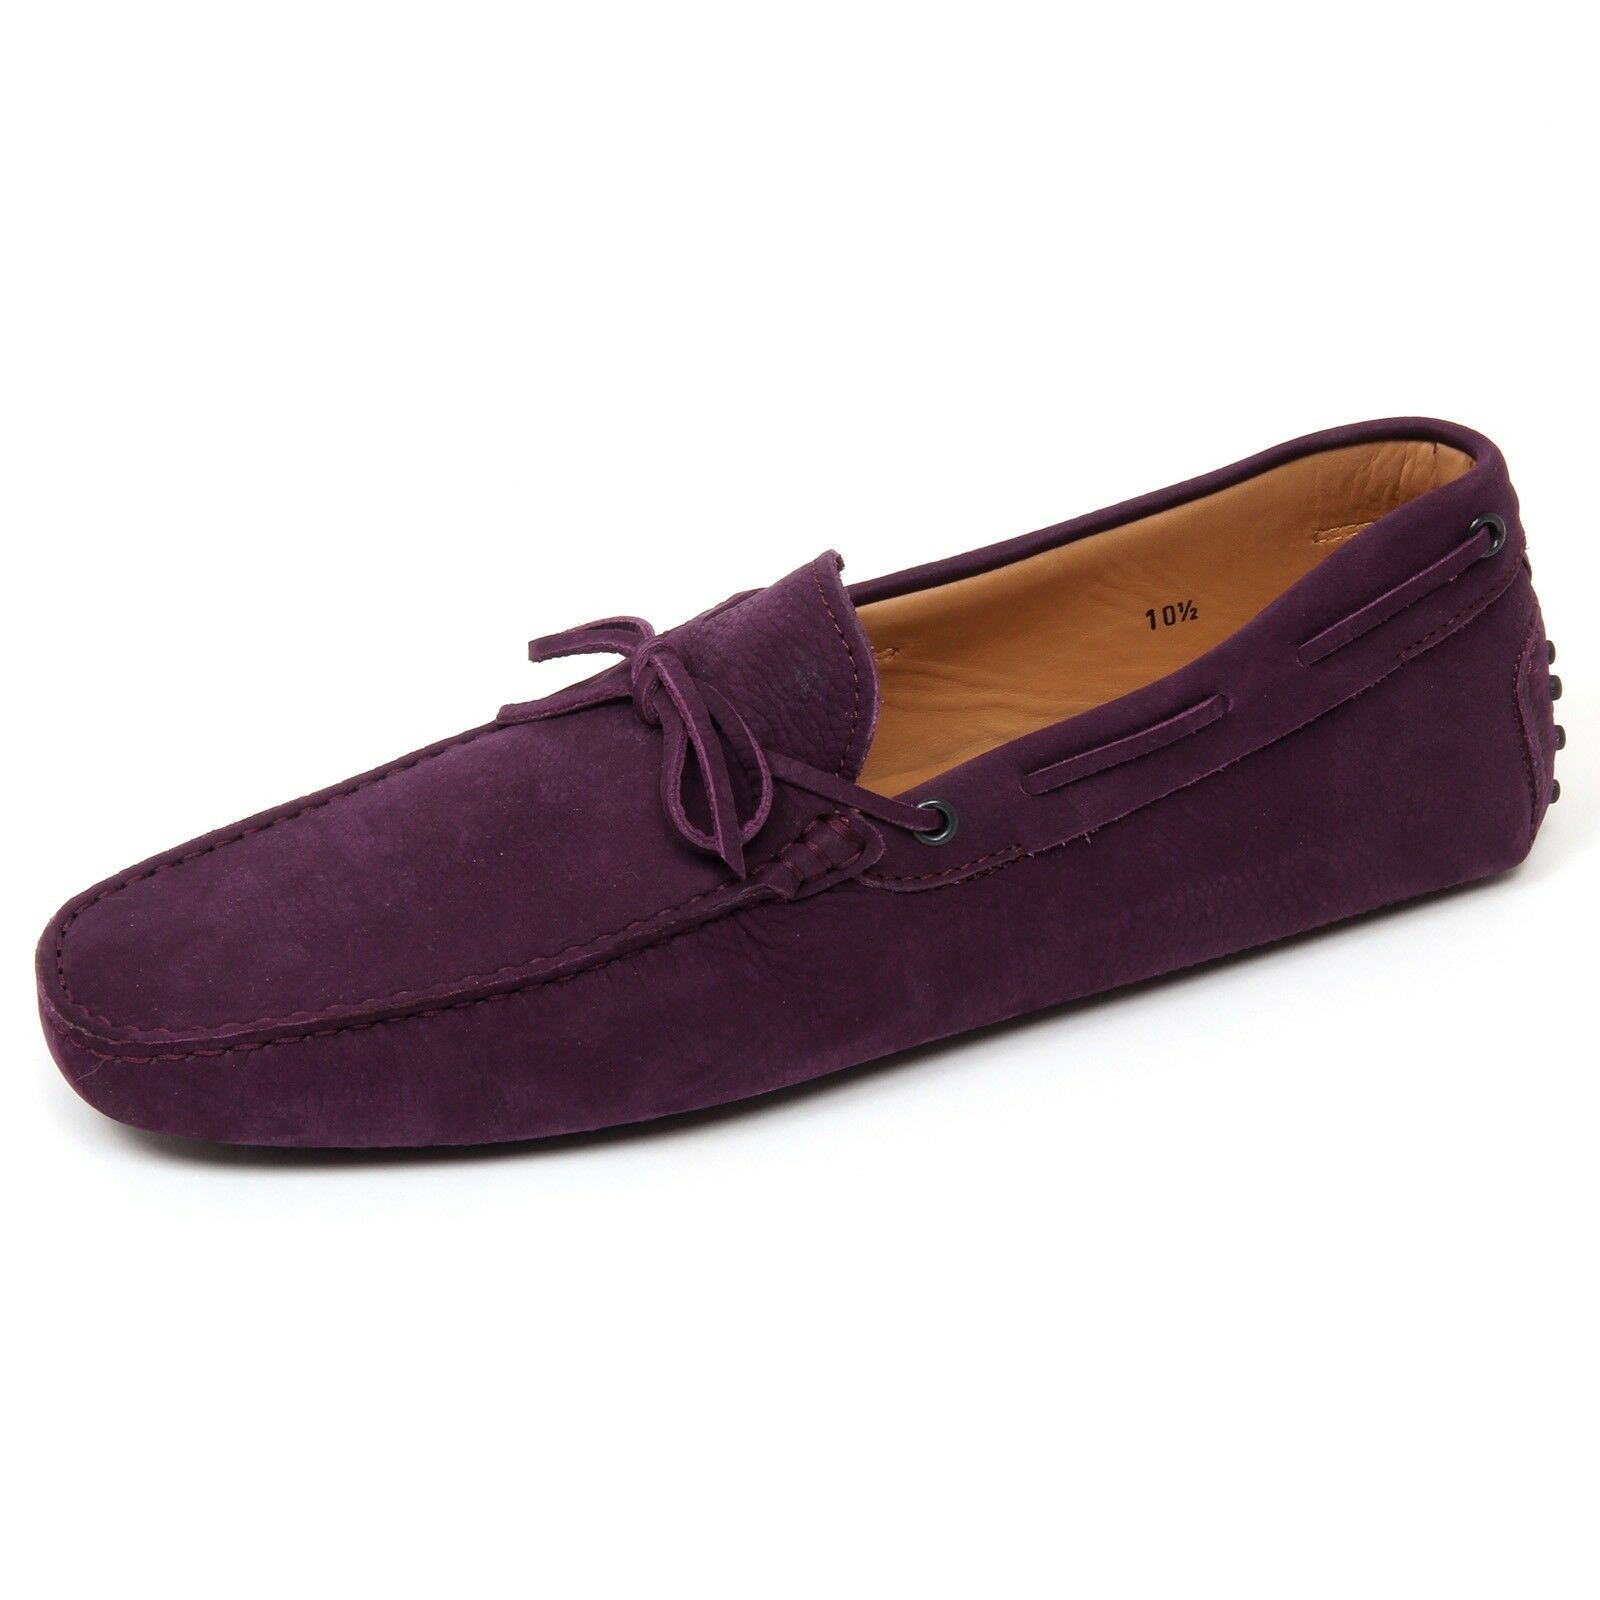 D0382 mocassino uomo TOD'S scarpa shoe new laccetto viola loafer shoe scarpa man 66d8d1